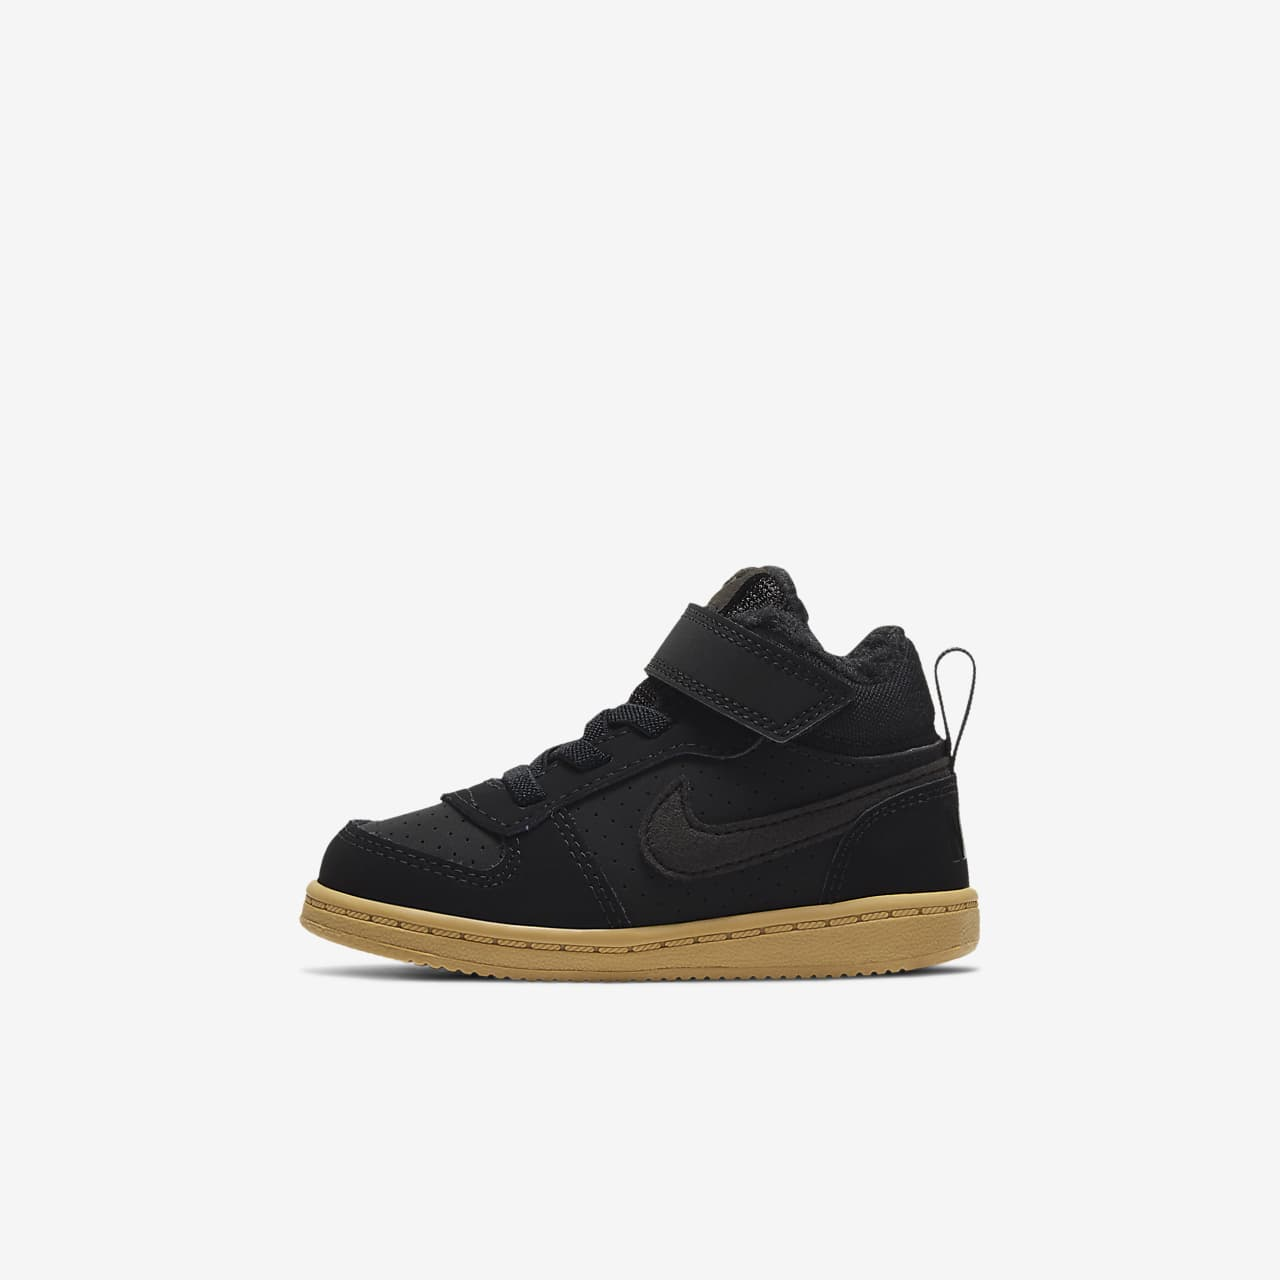 NikeCourt Borough Mid Winter Baby & Toddler Shoe